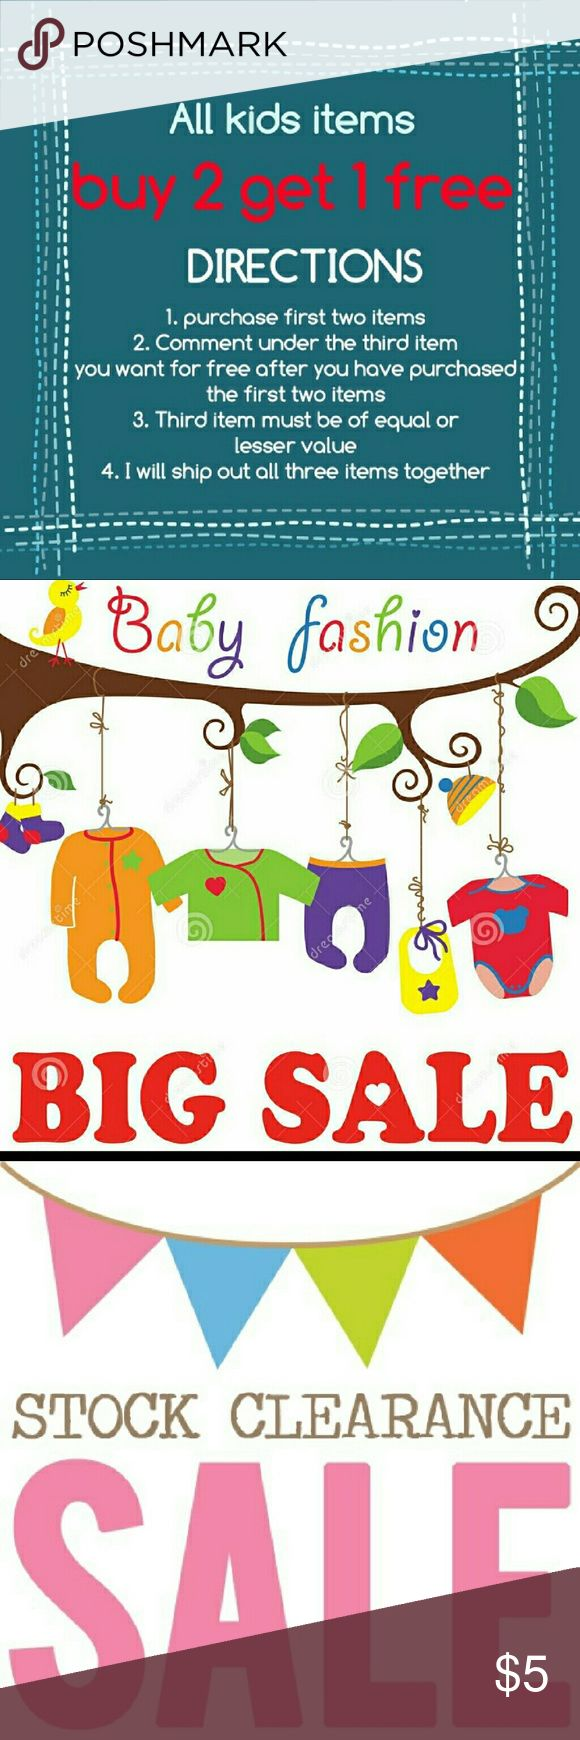 OH BABY! BID SALE THIS WEEKEND!!! Buy 2 kids items get the 3rd one FREE Janie and Jack Shirts & Tops